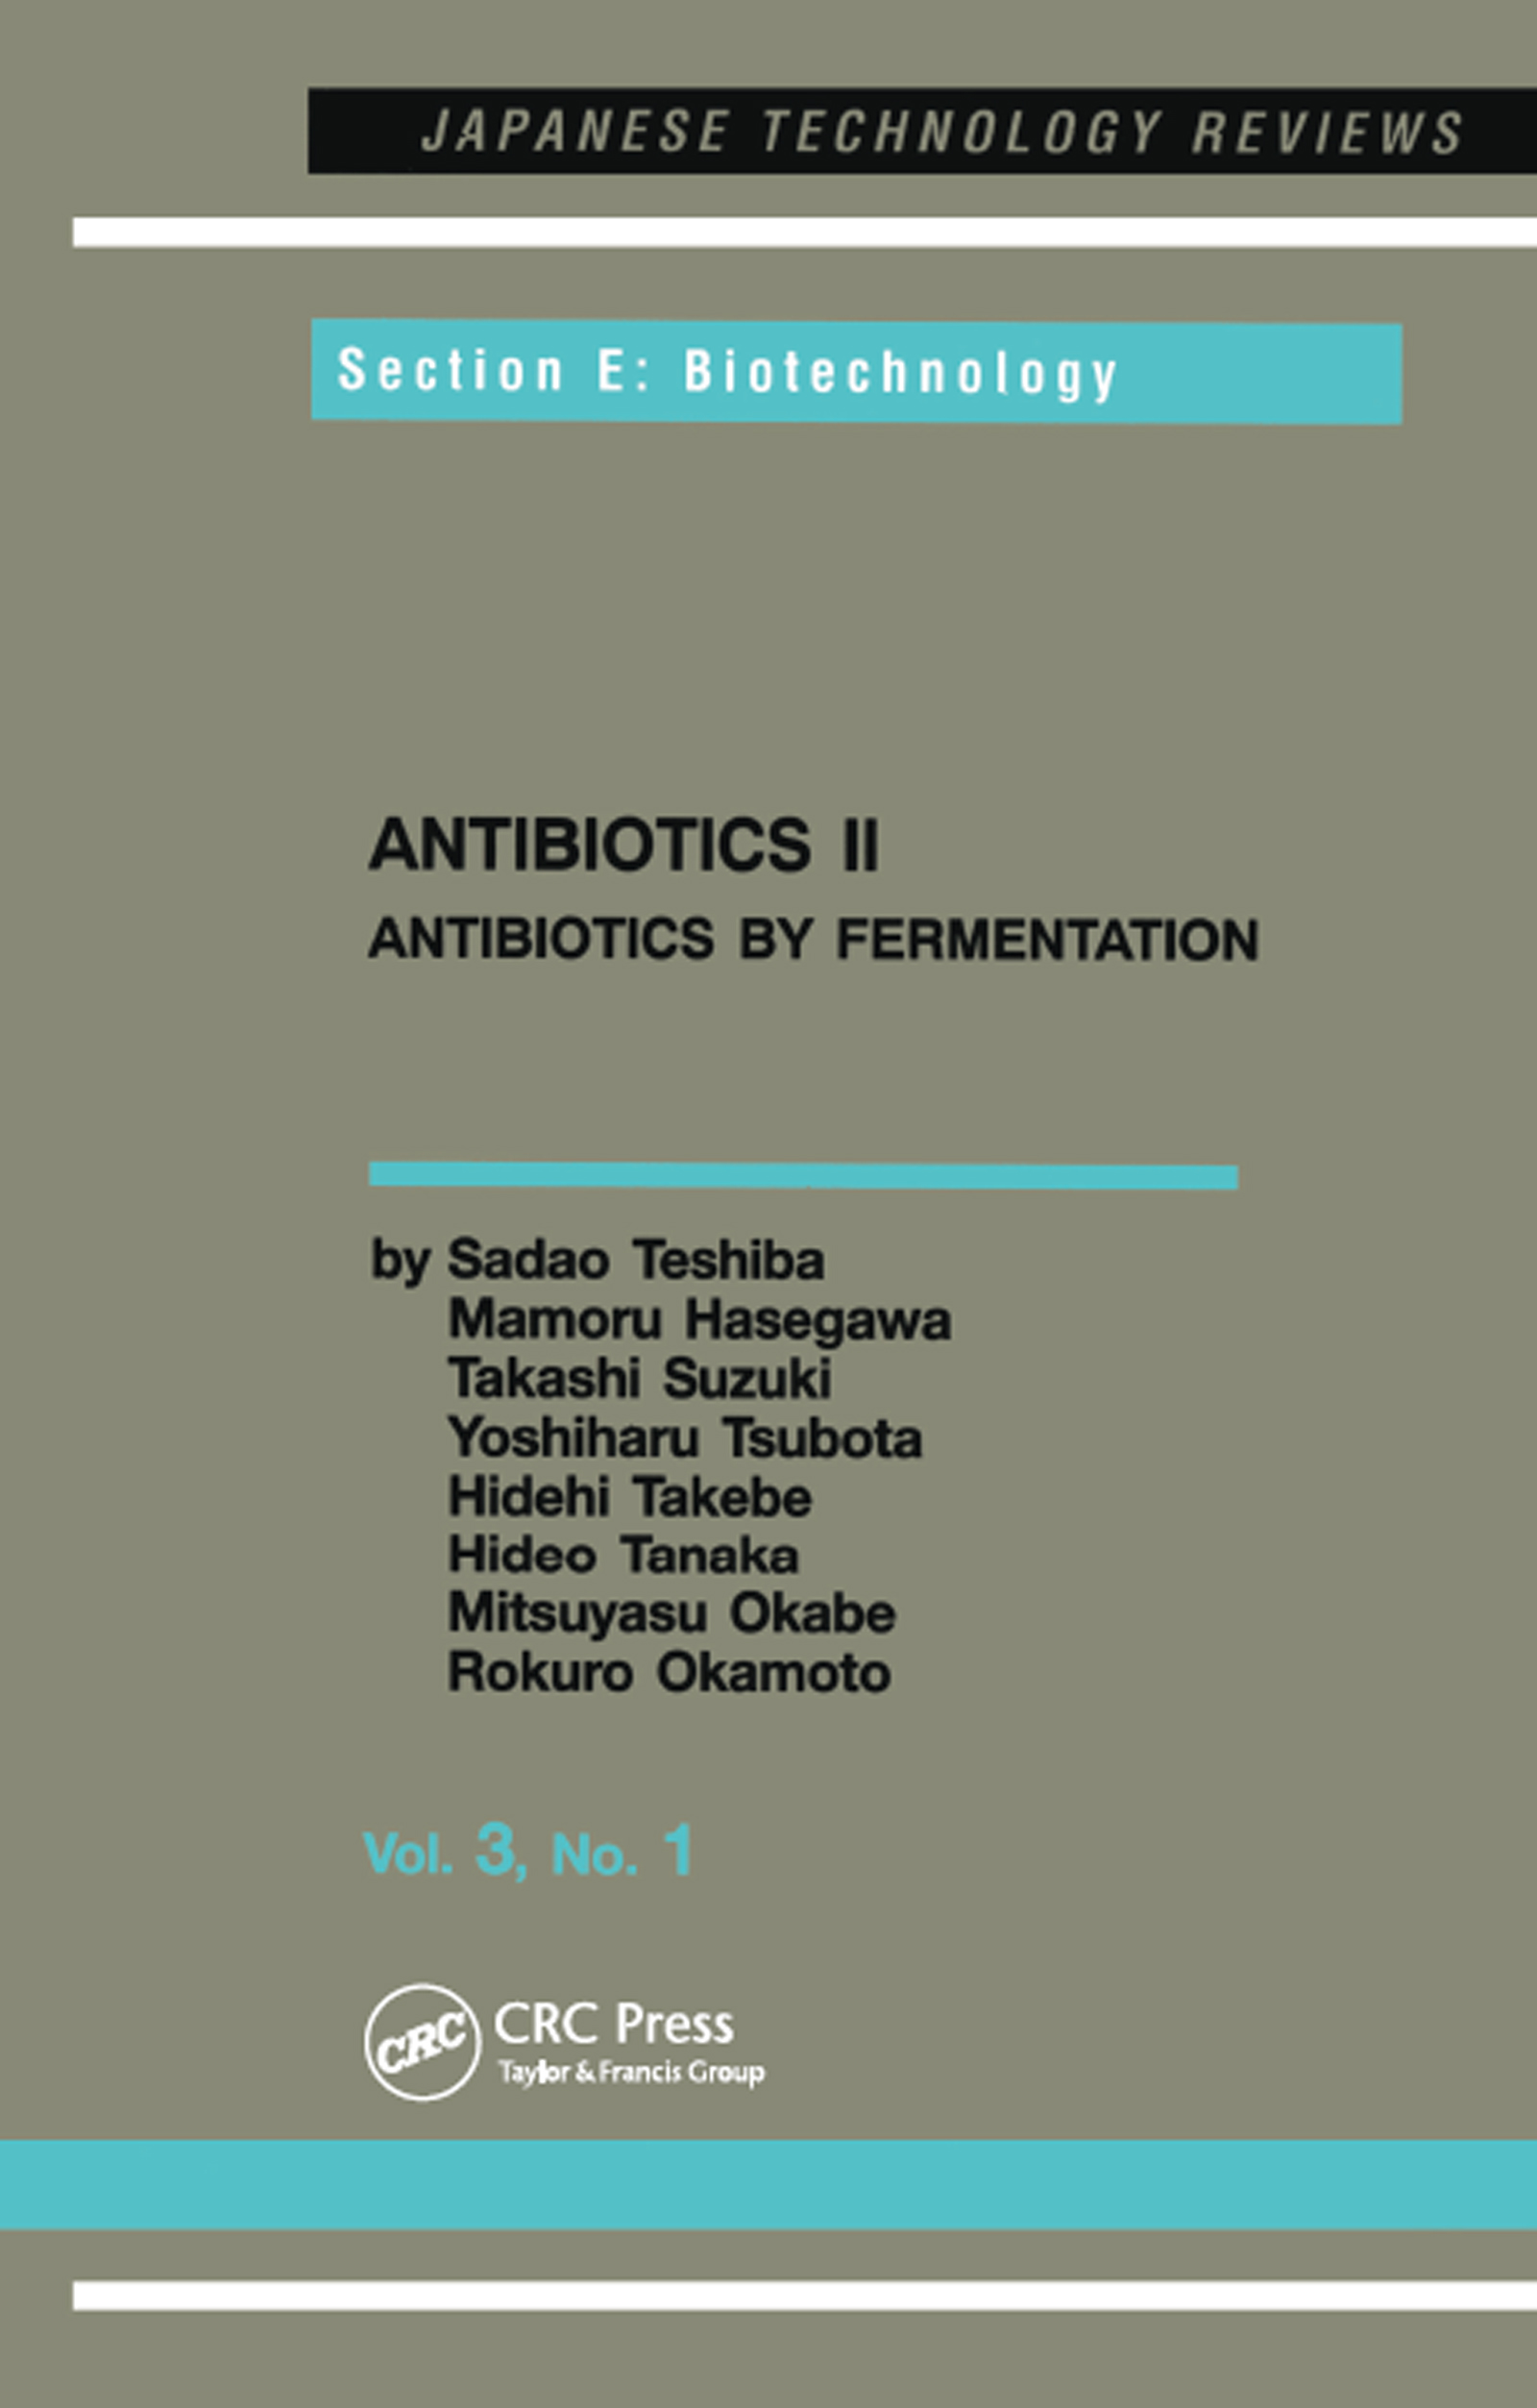 Antibiotics II